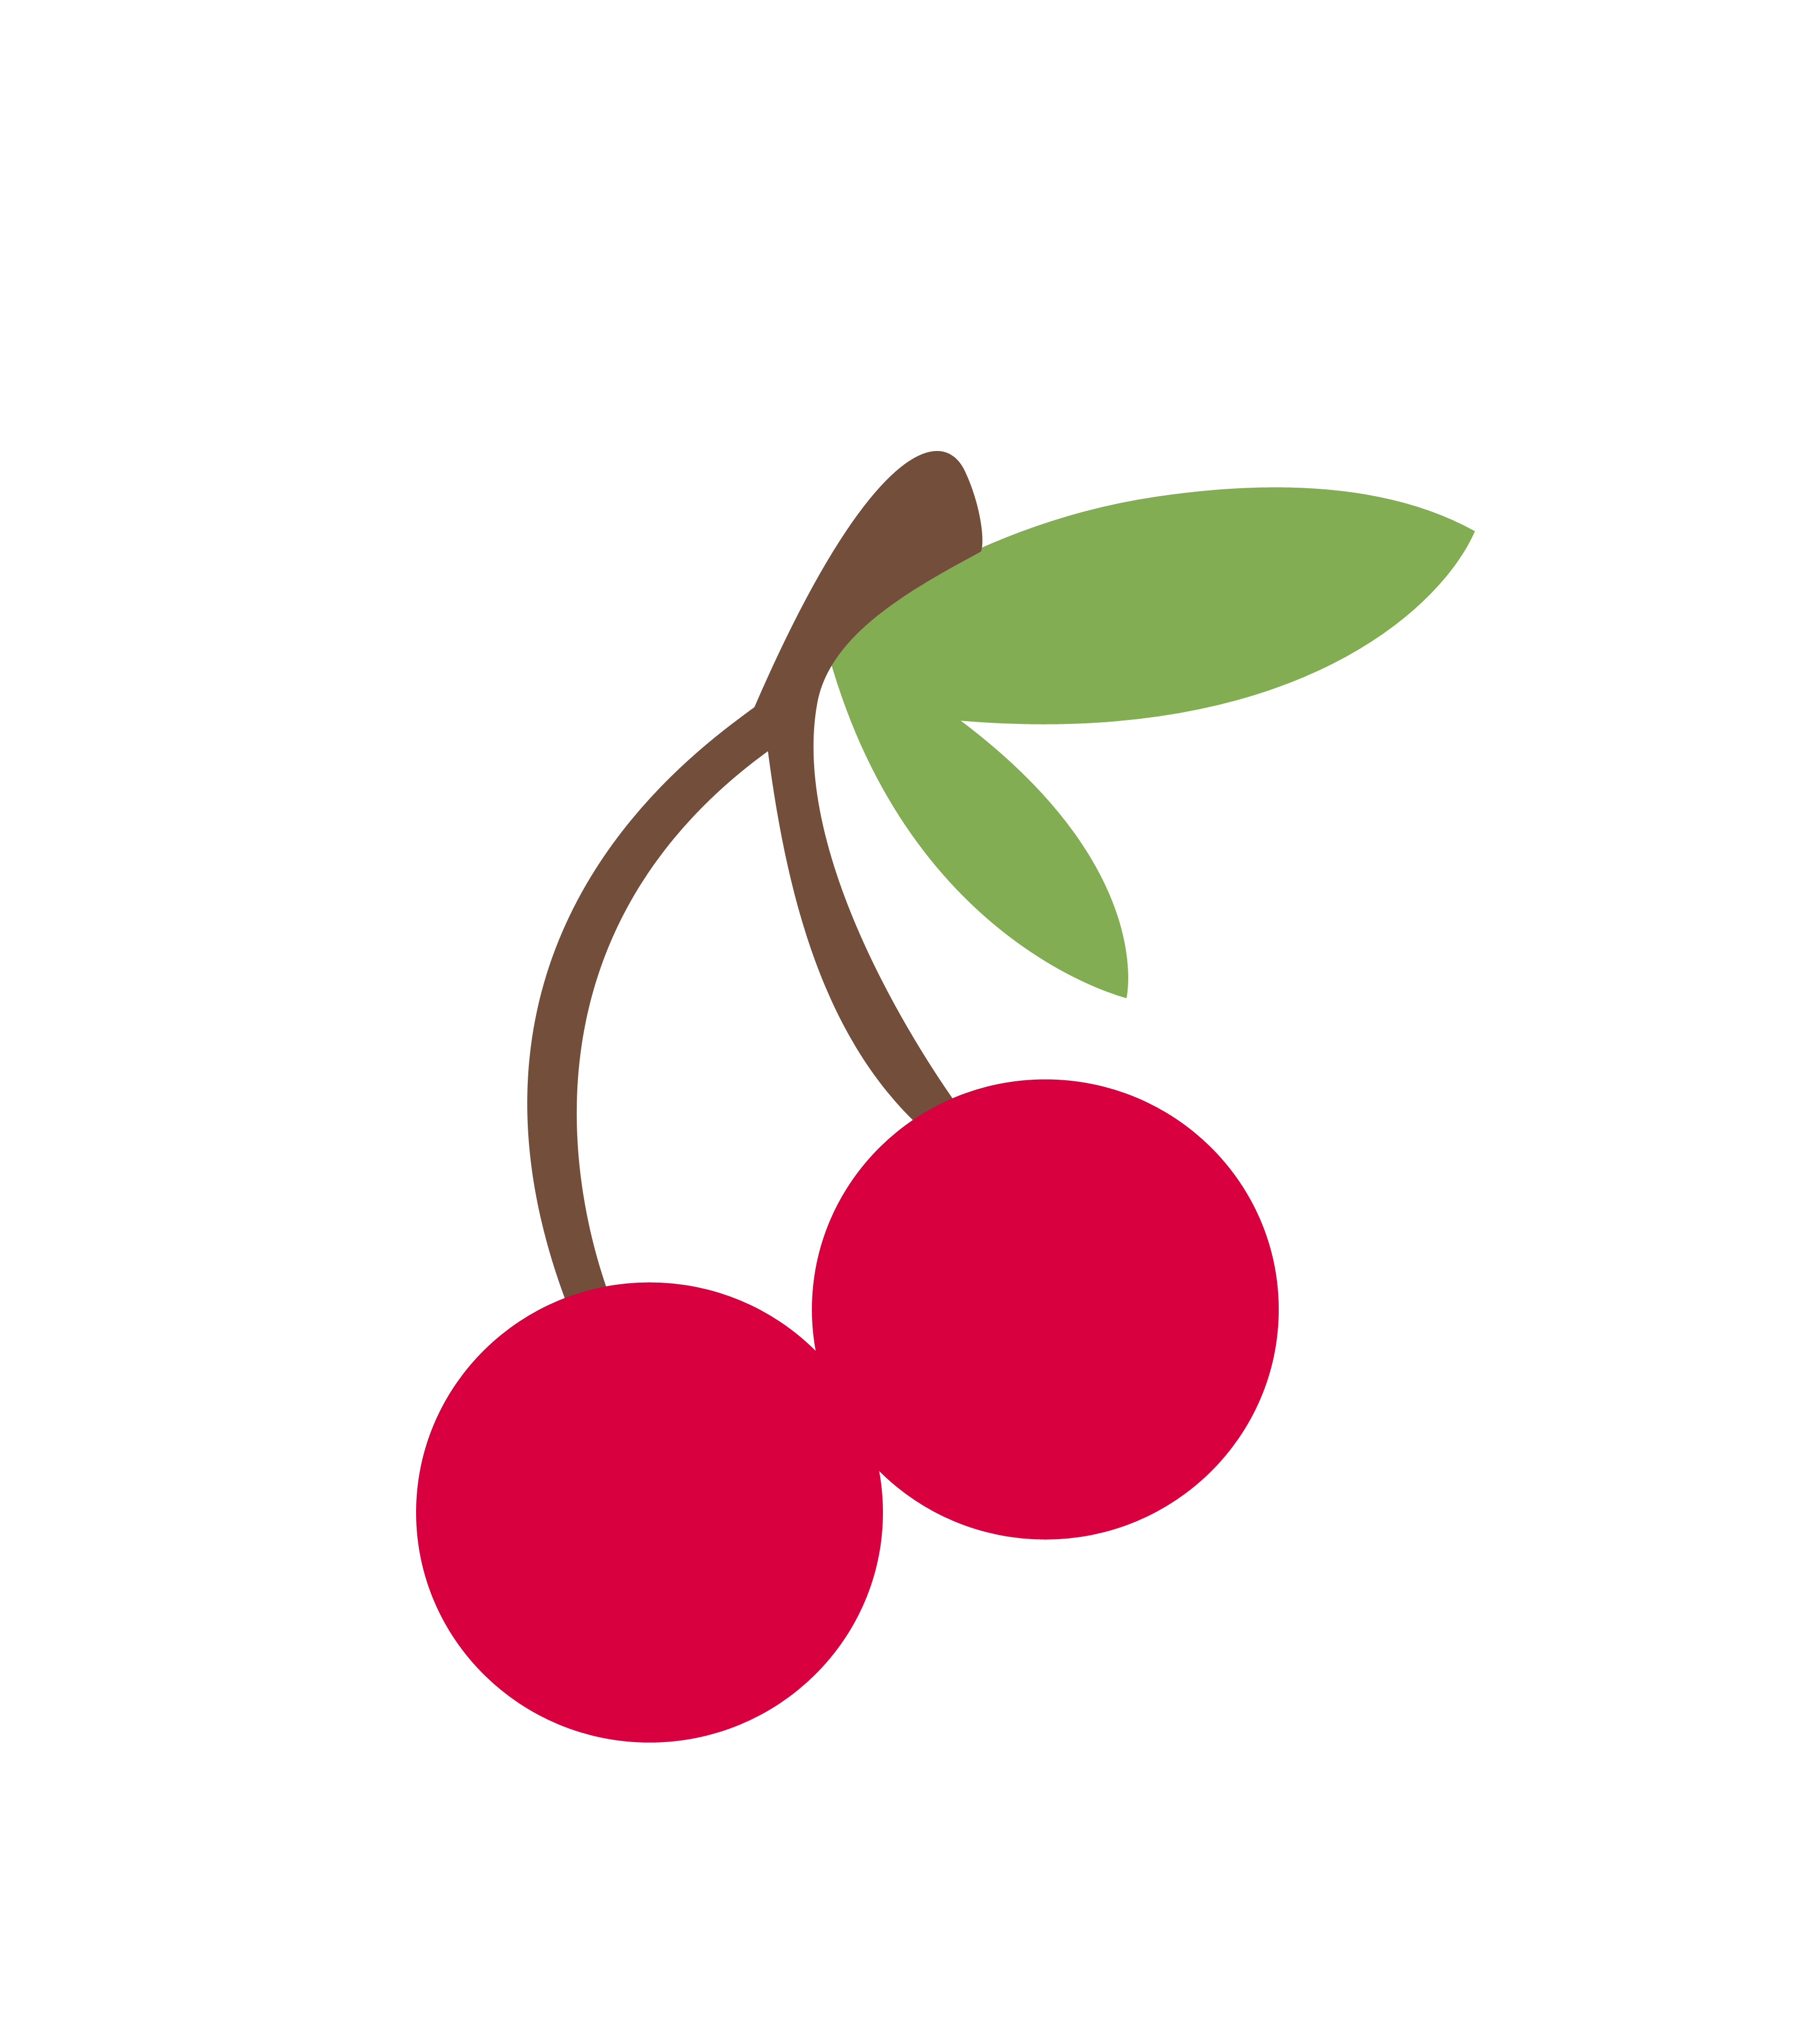 Cherry Vector Transparent Background PNG Image